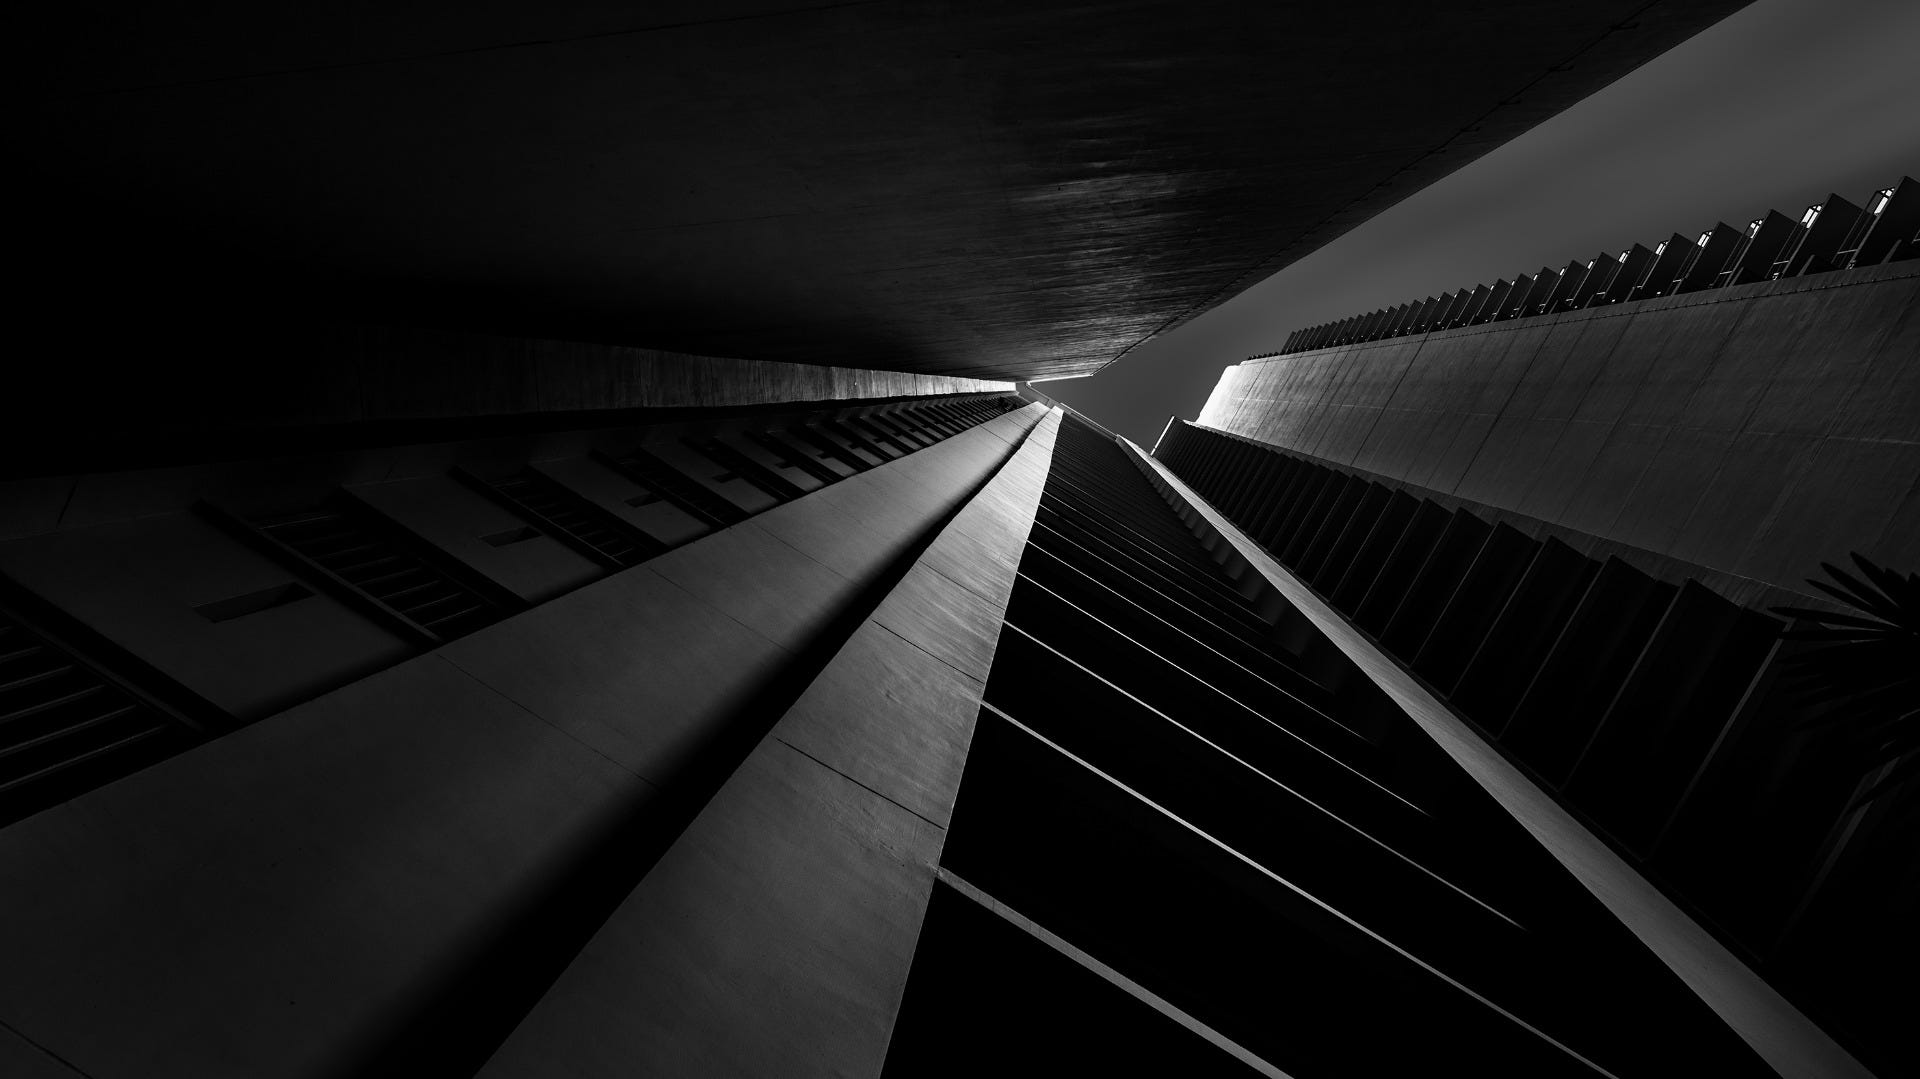 Black & White Fine Art Photography demonstrating Bug's Eye View Perspective